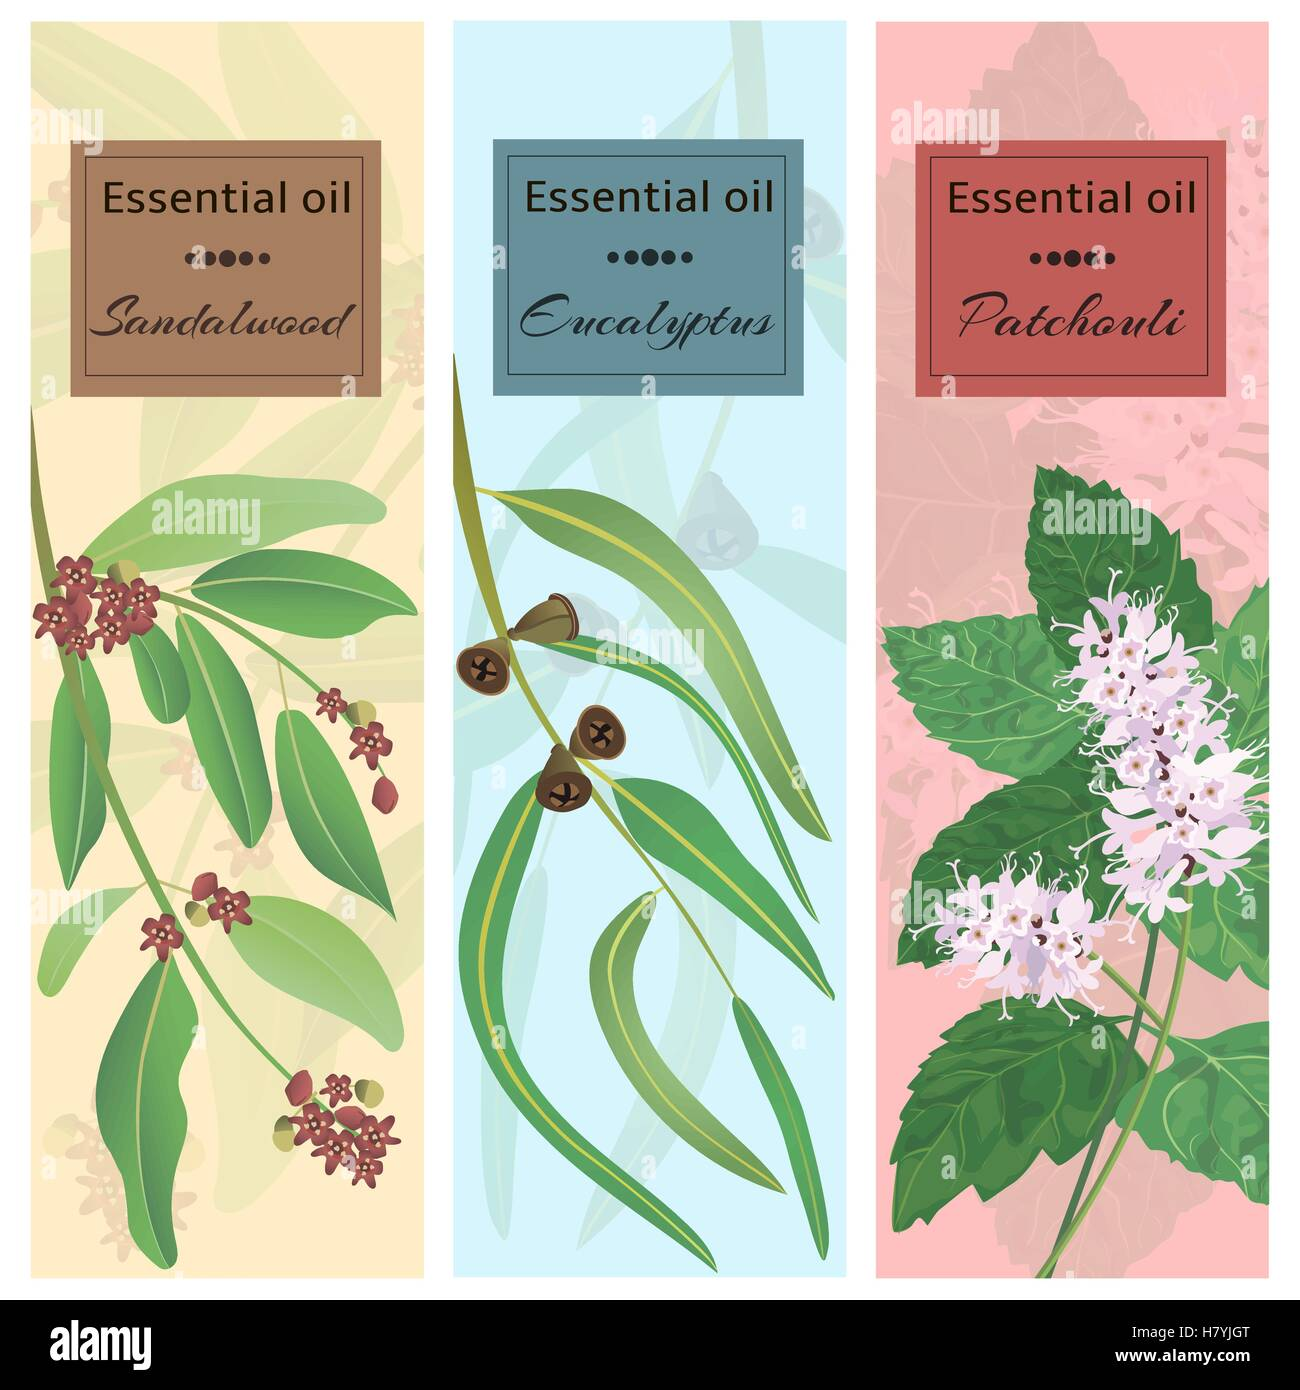 Essential oil set collection. Sandalwood, eucalyptus, patchouli banner set. Vector illustration EPS 10. - Stock Vector